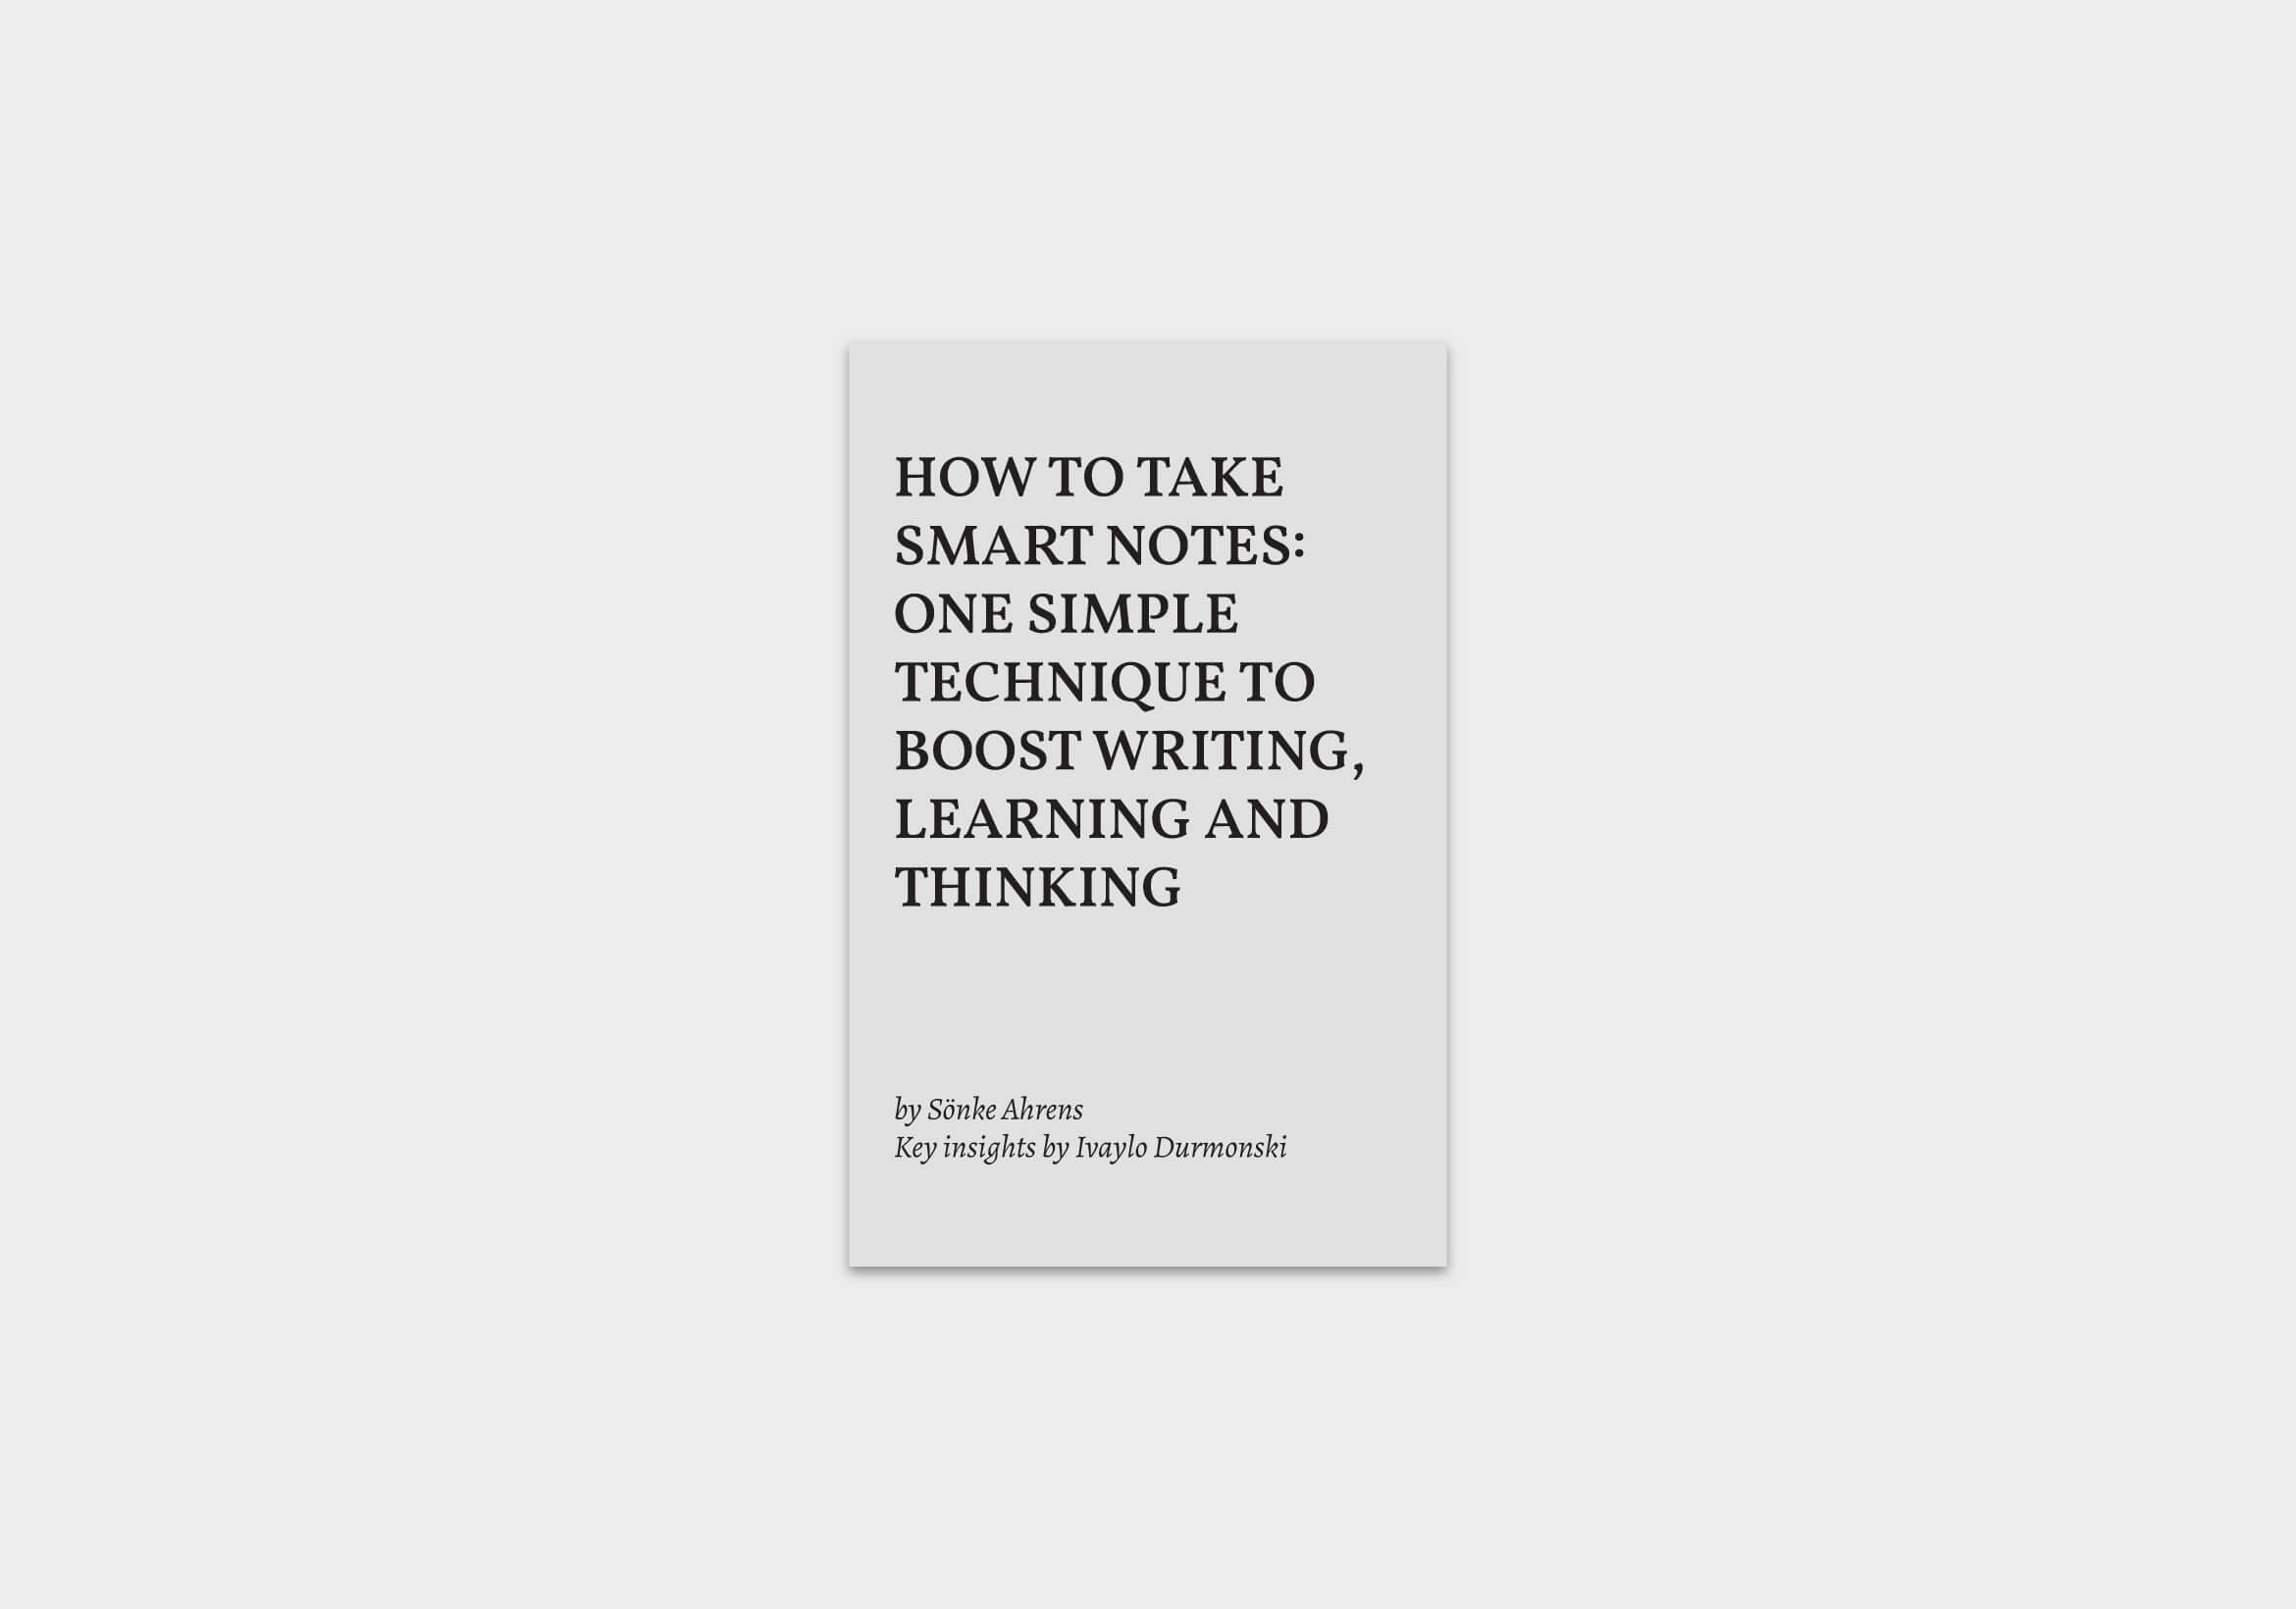 How-to-Take-Smart-Notes-summary